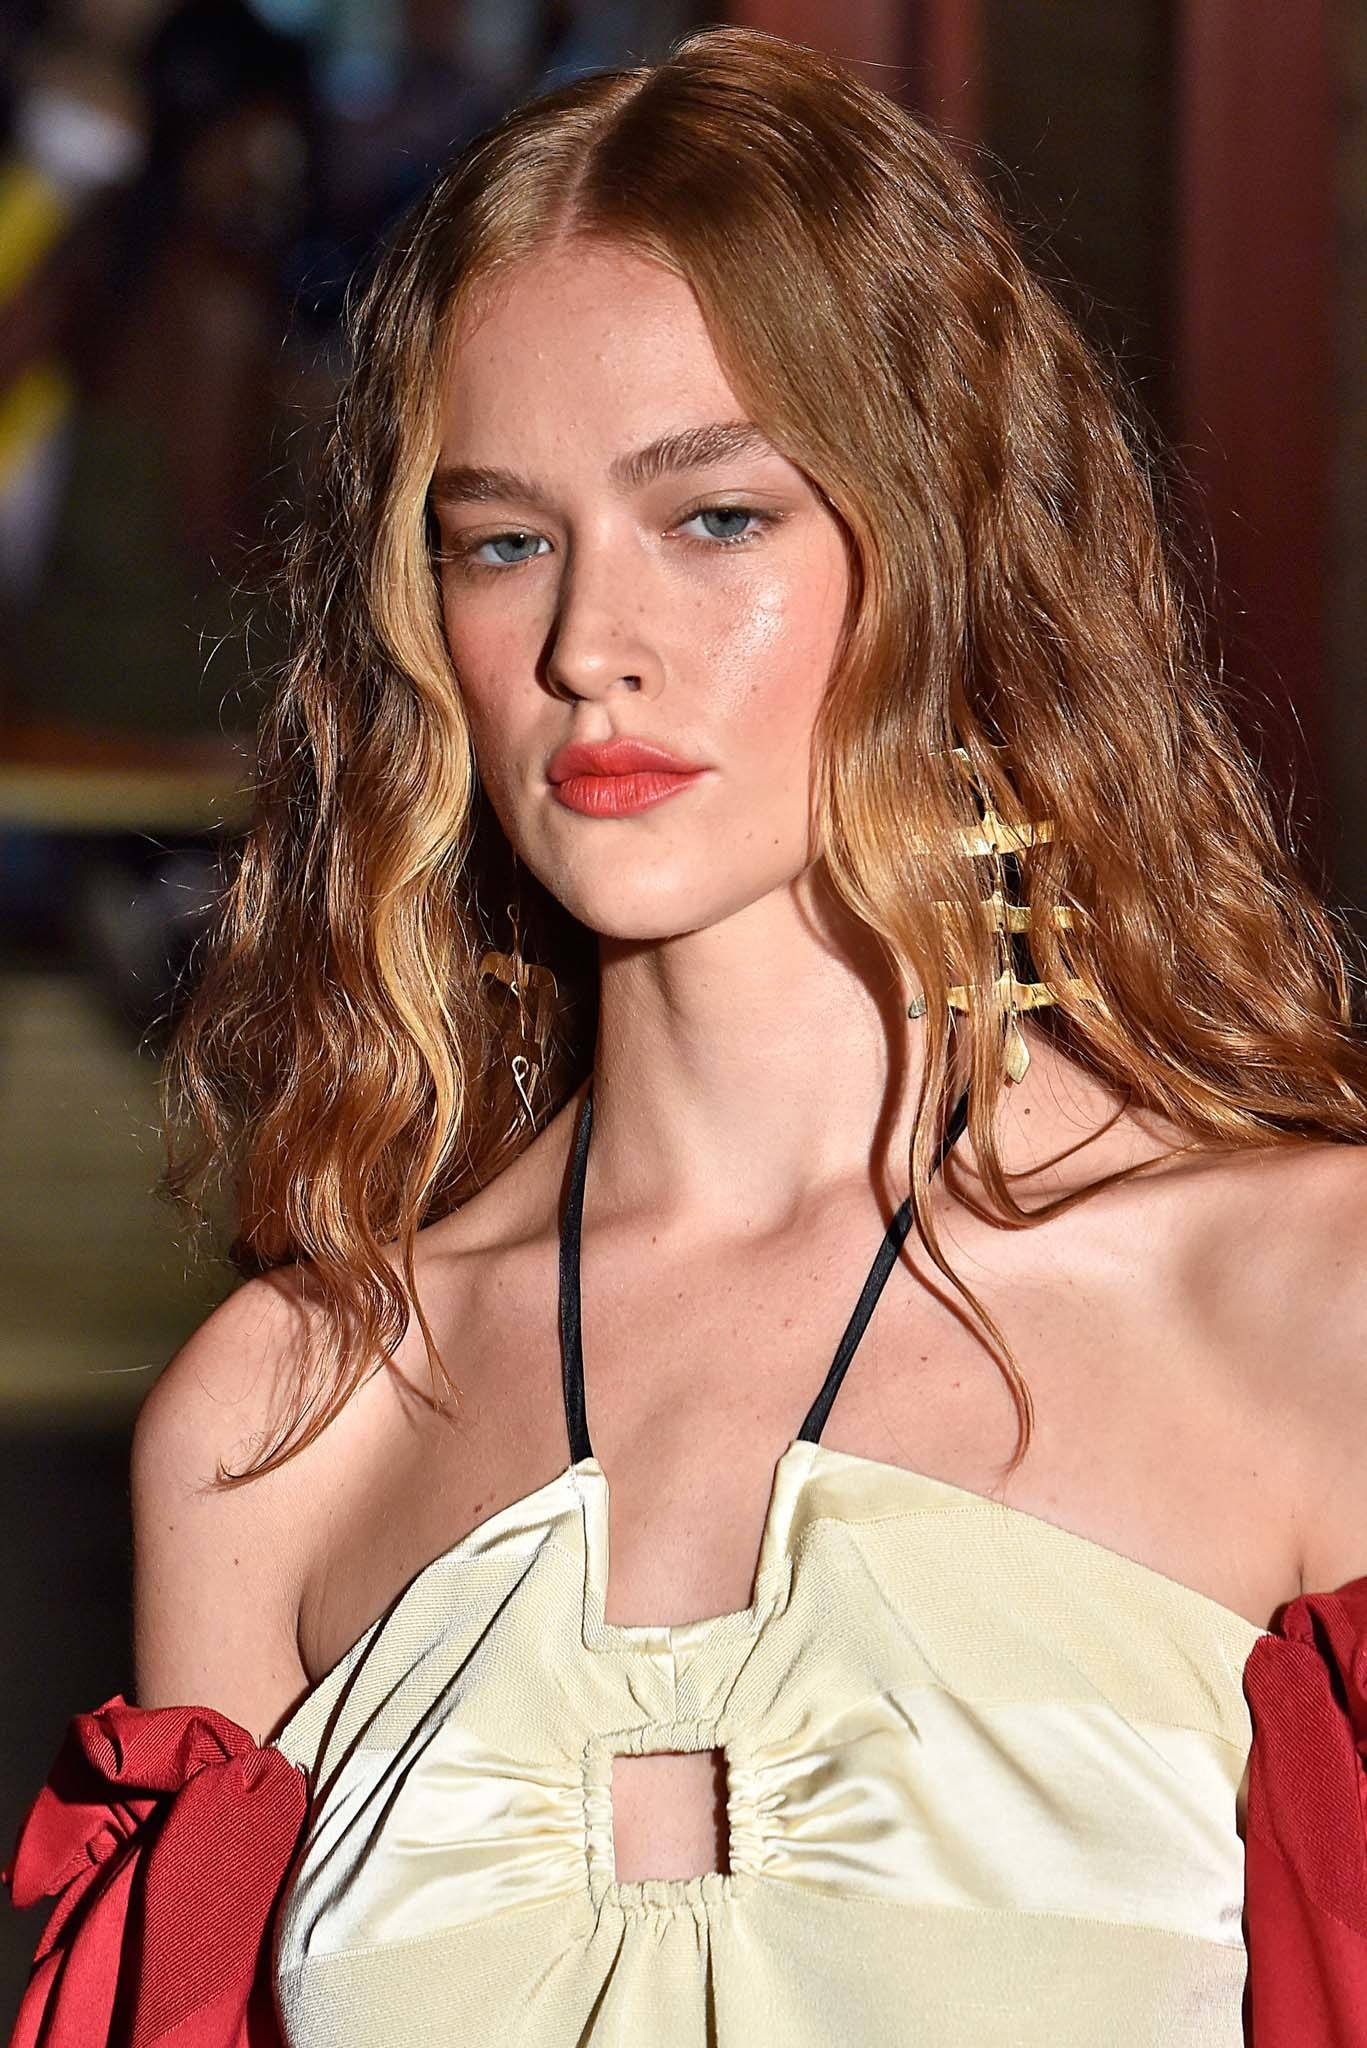 NYFW SS19: Close up shot of a model with long bronde hair styled into wavy curls, wearing a halter neck dress and walking down the Hellessy runway